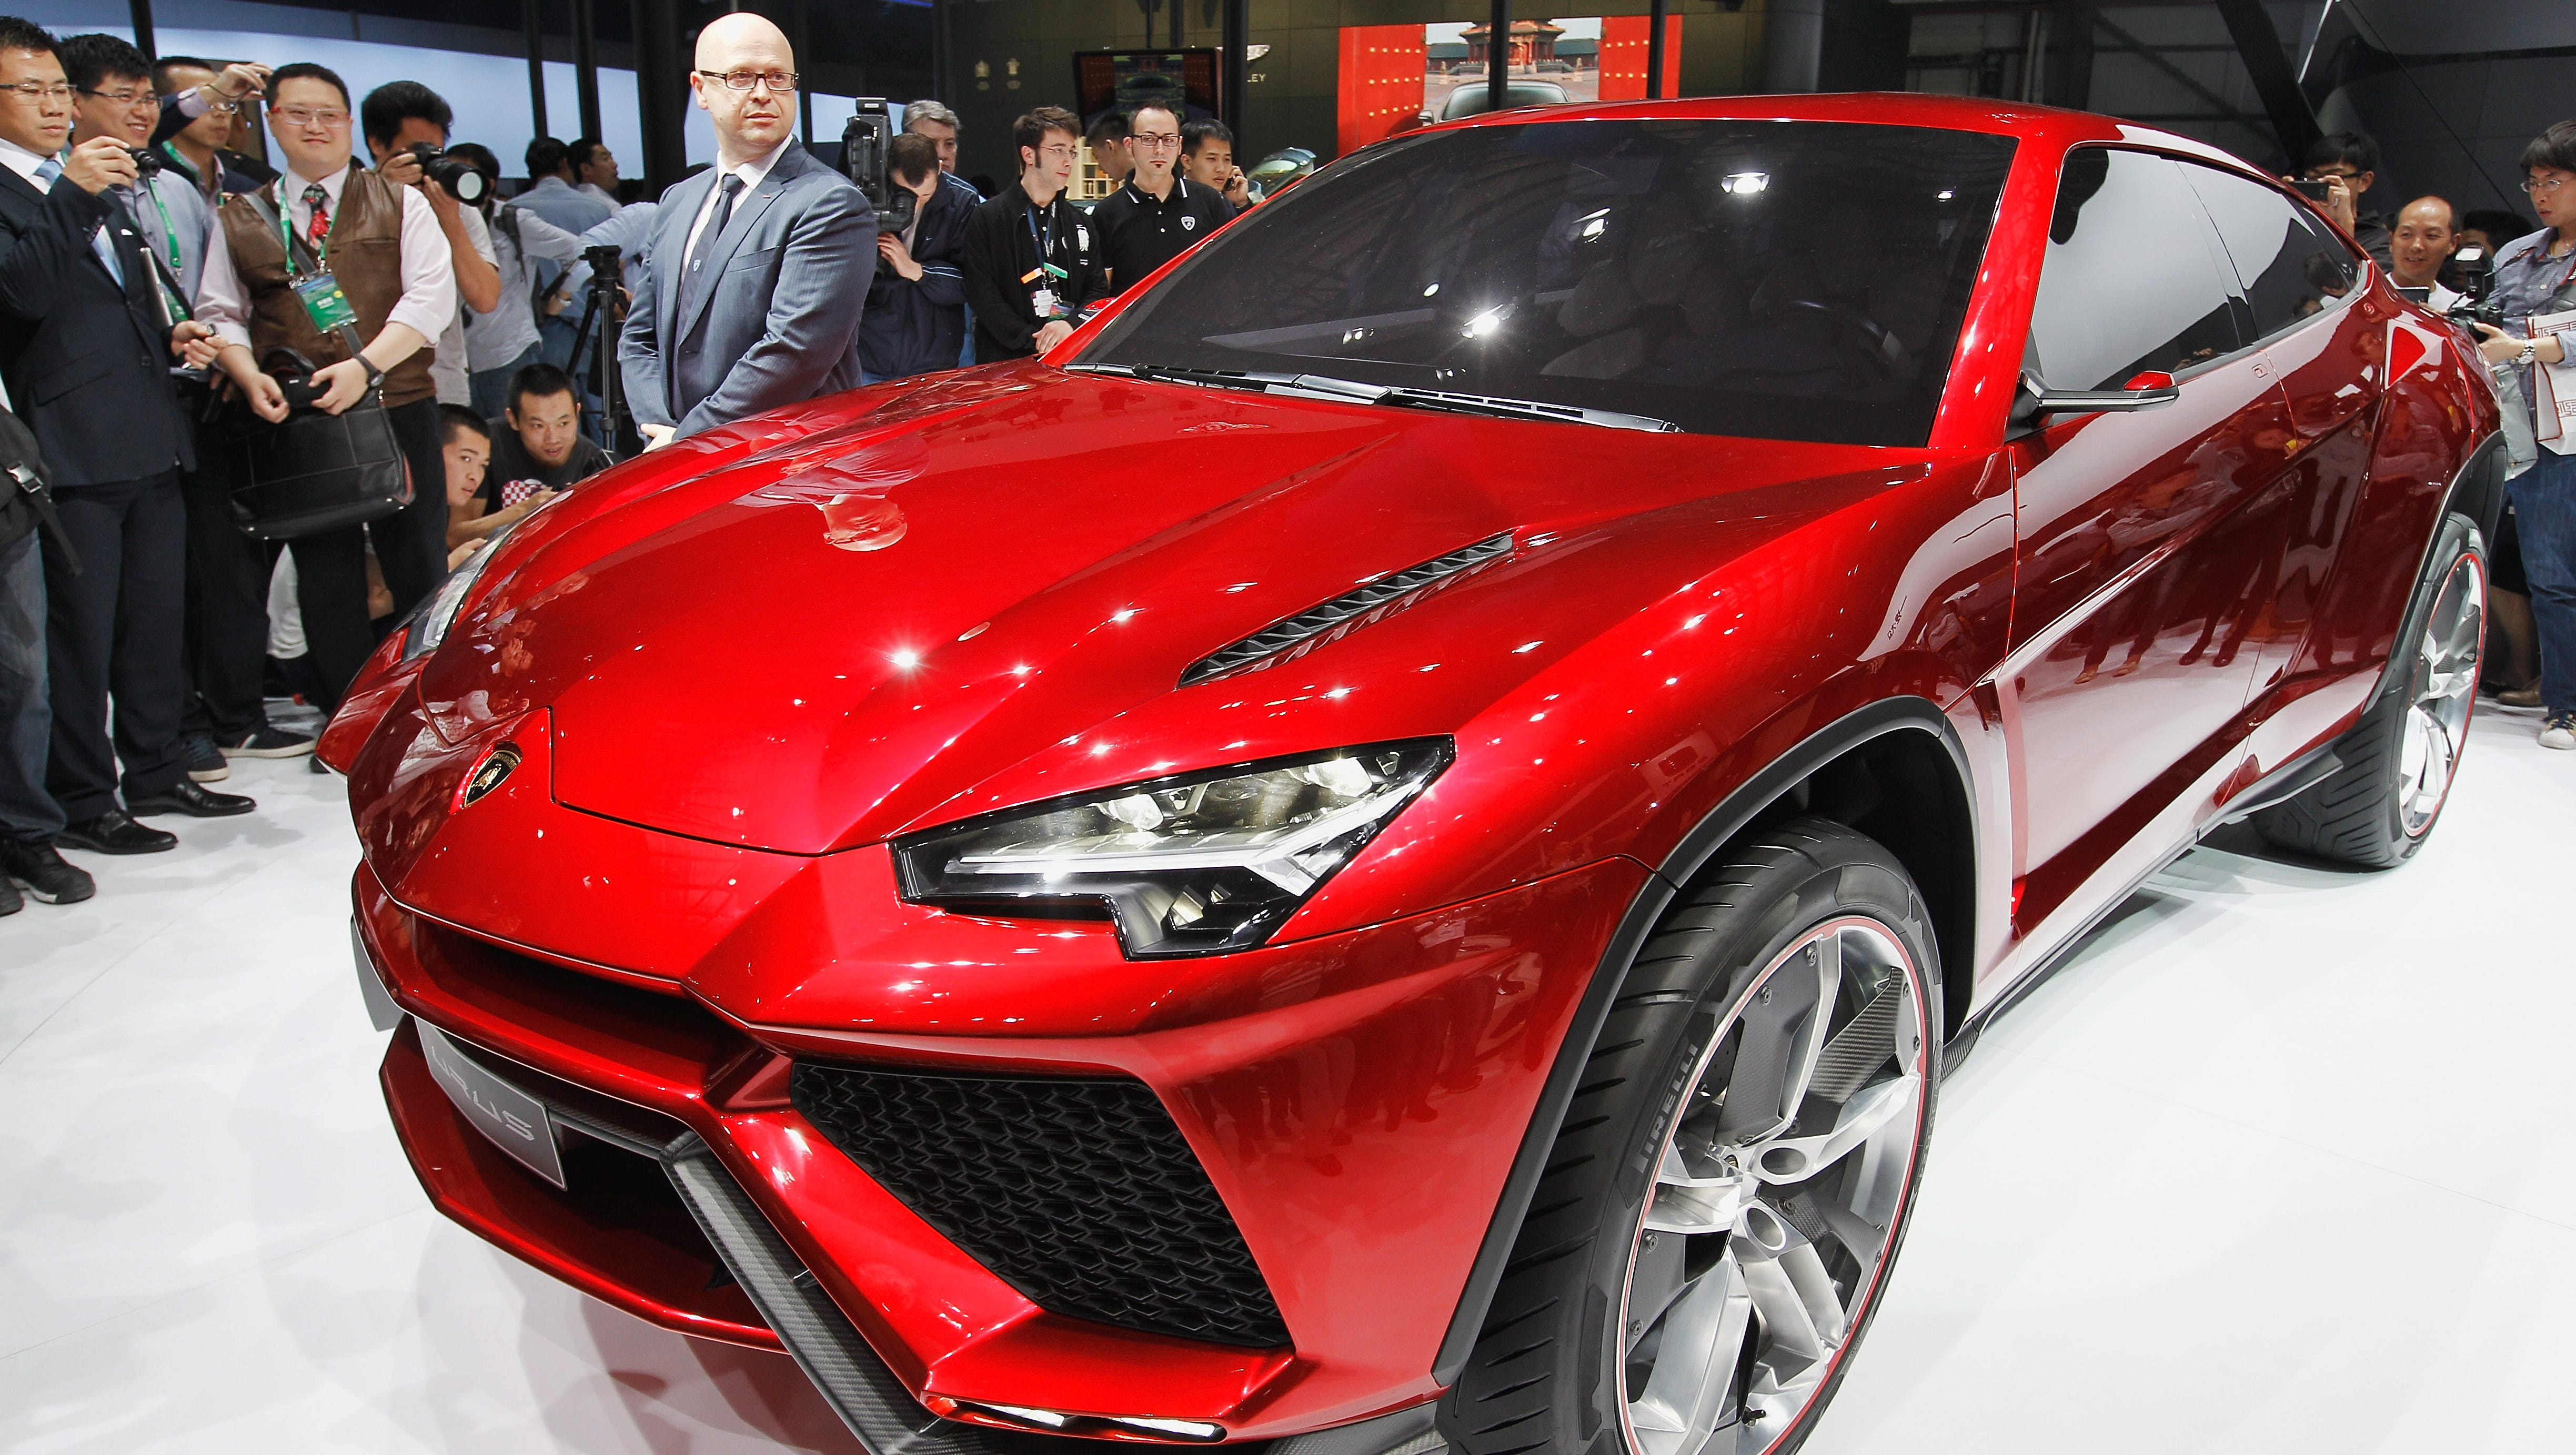 It Will Go Up With Super Deluxe Suvs From Rolls Royce Bentley And Maserati Among Others